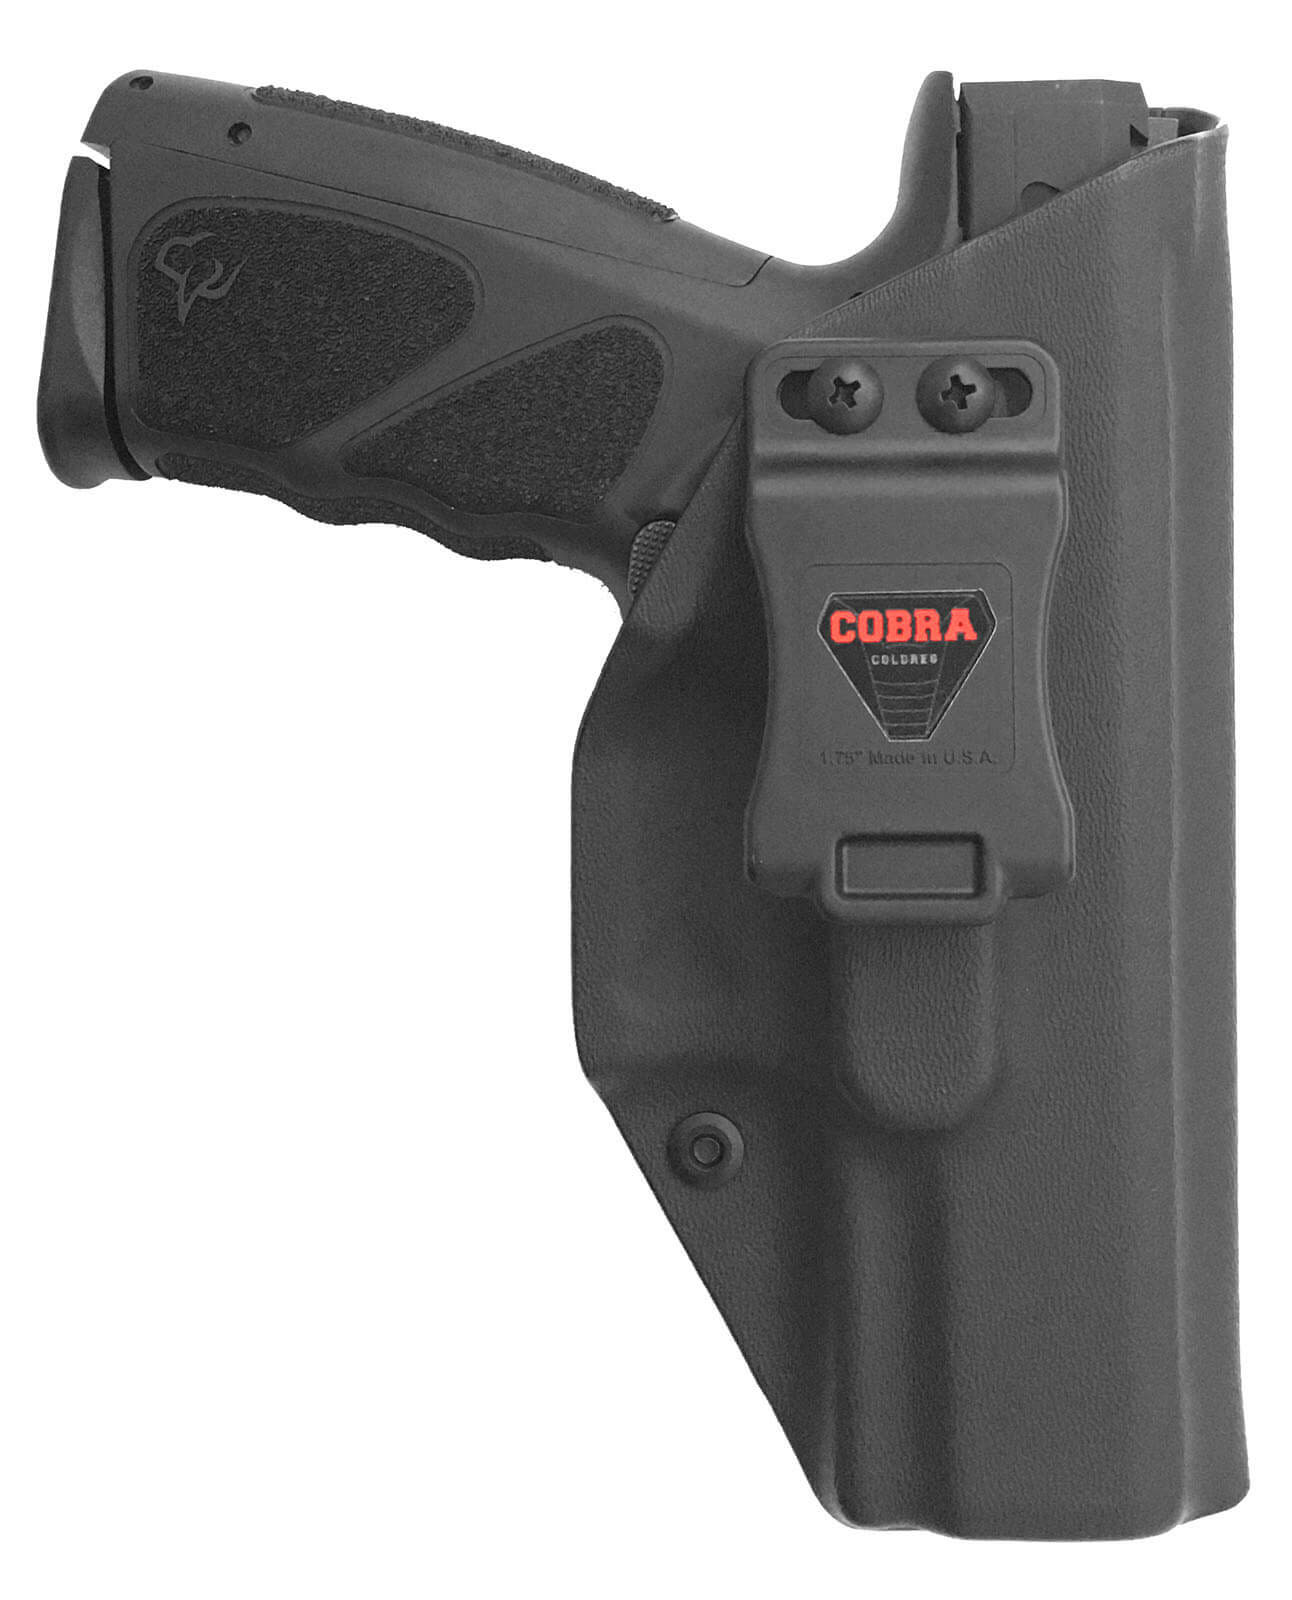 Coldre [TS9] [TS] Kydex® Taurus Striker - Slim - Saque Rápido Velado - 080